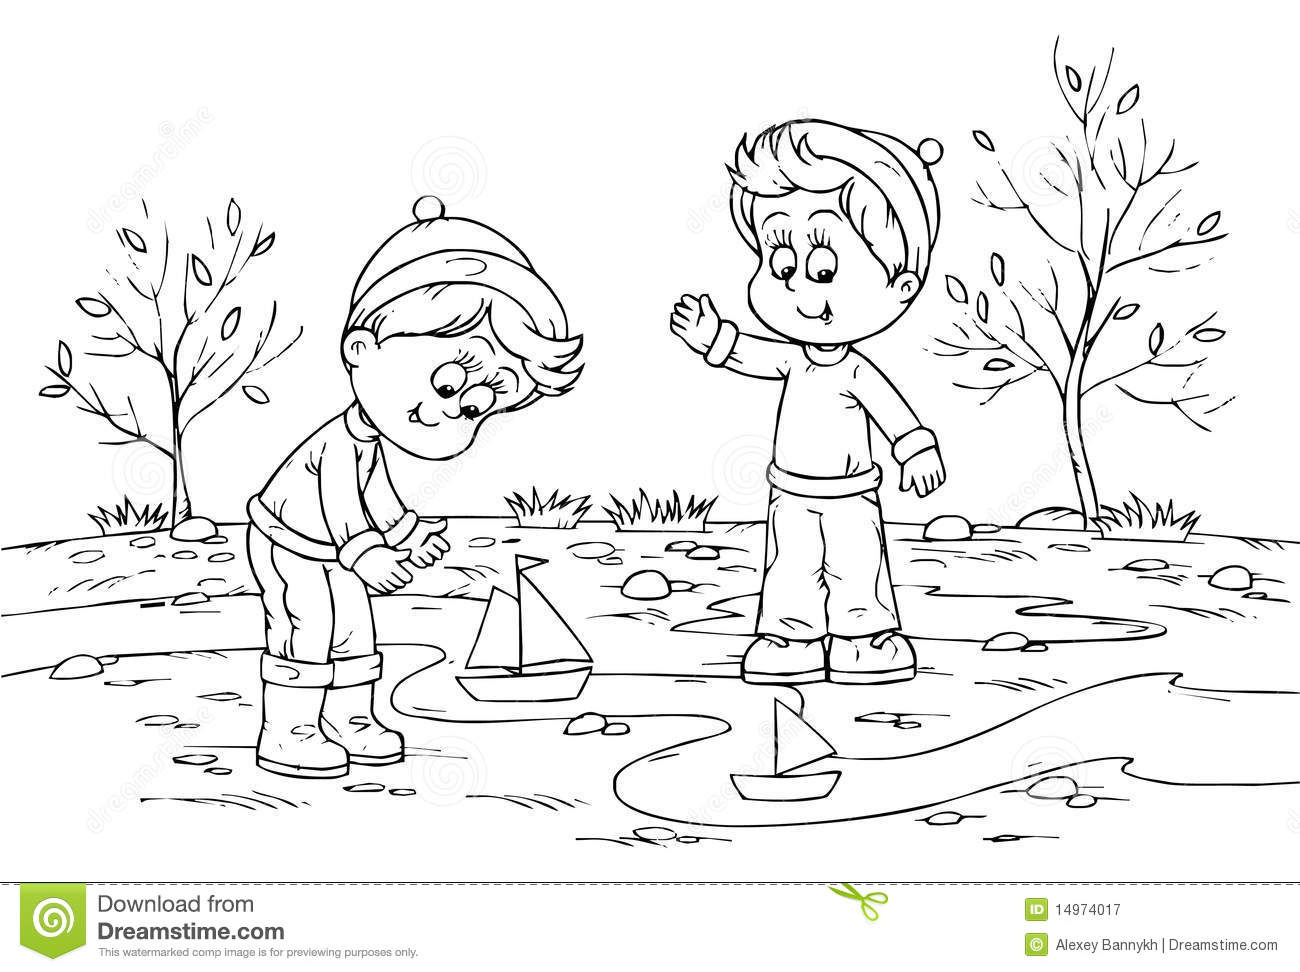 children playing with toy ships stock illustration - illustration of